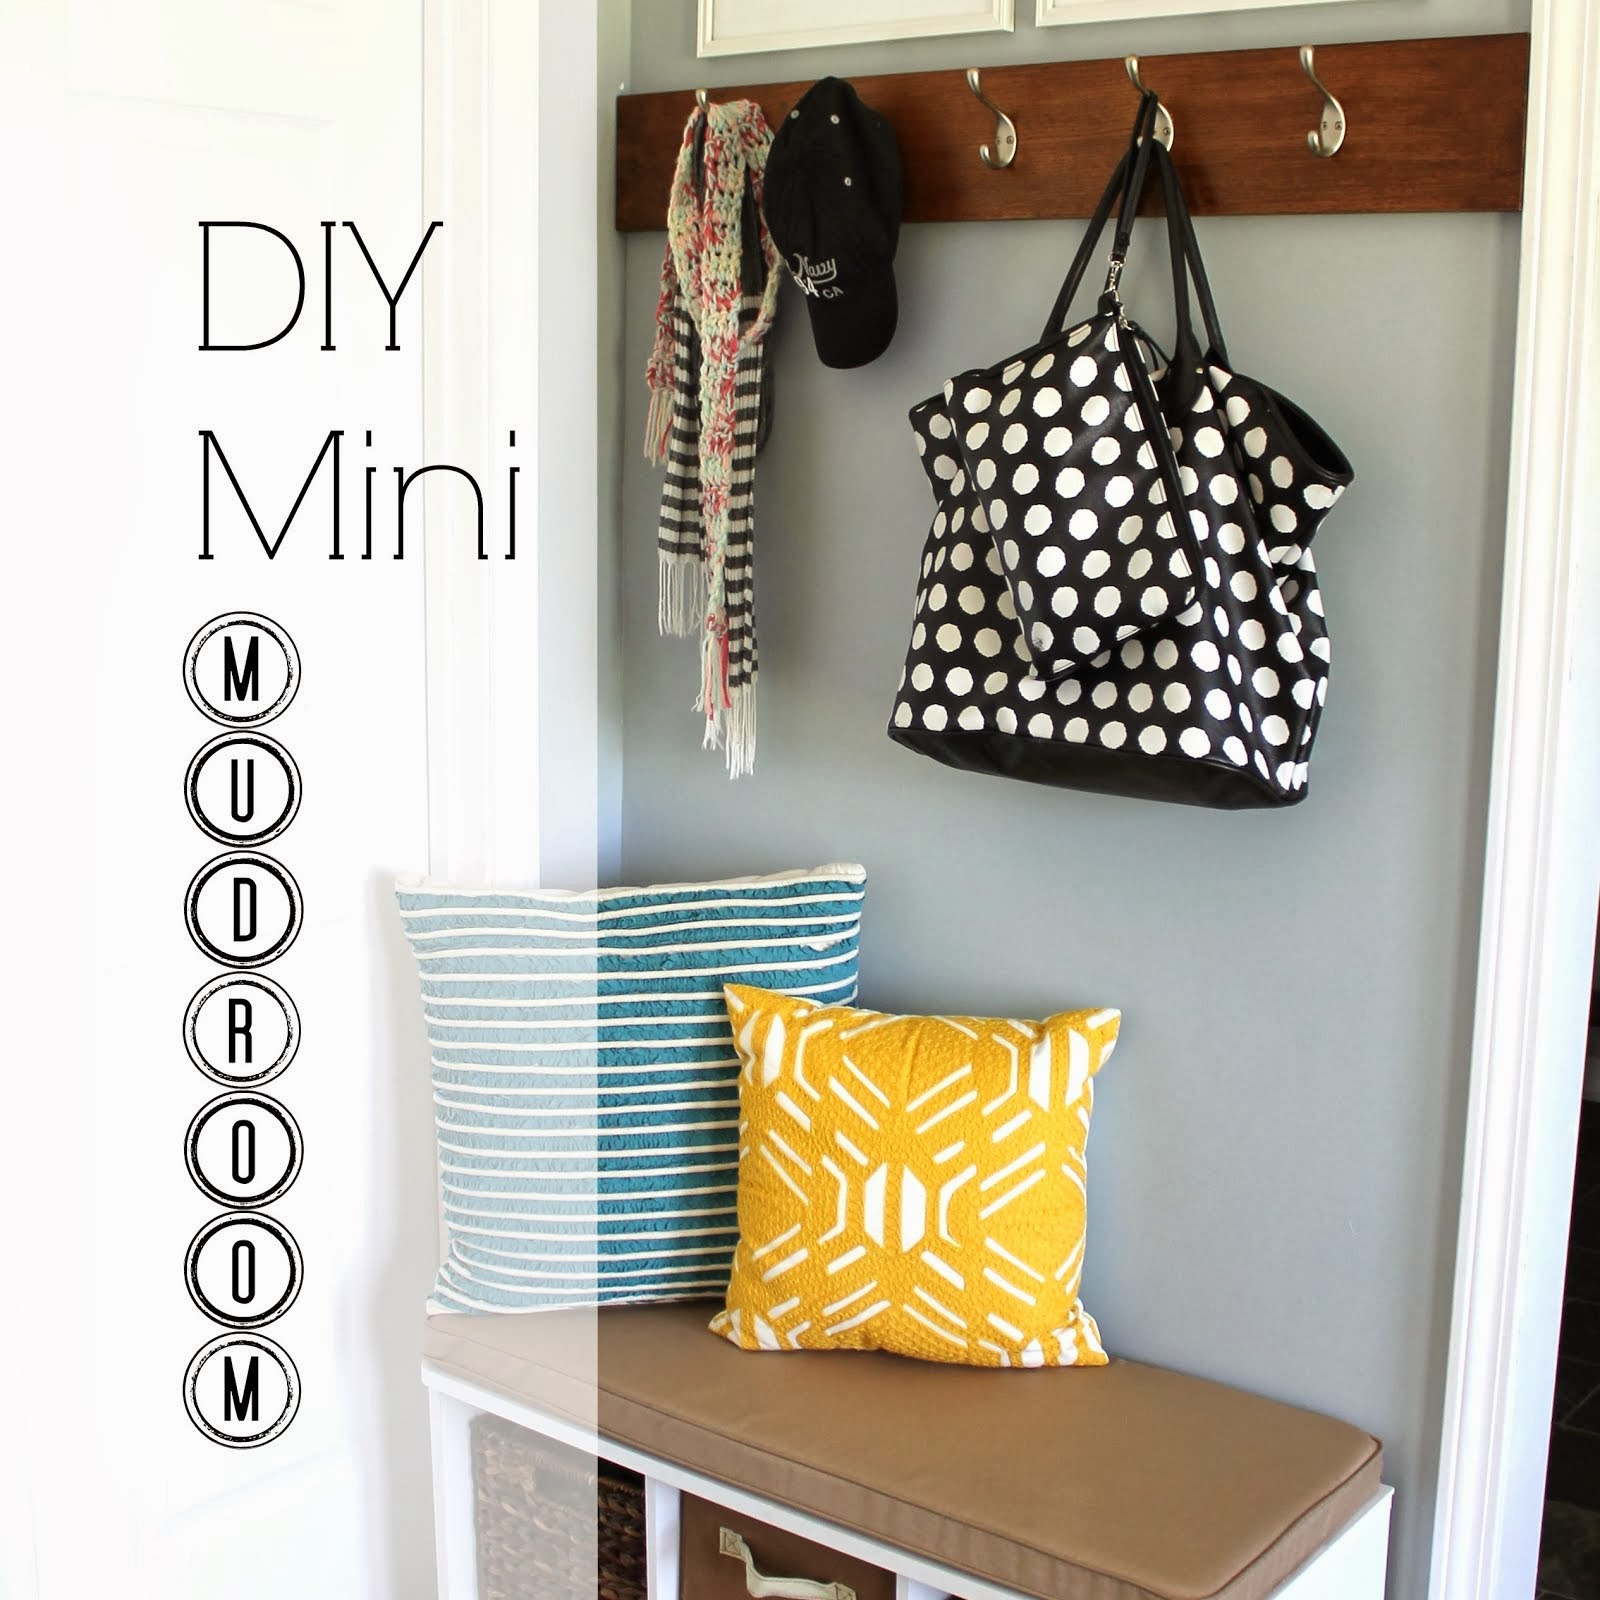 DIY Mini Mudroom